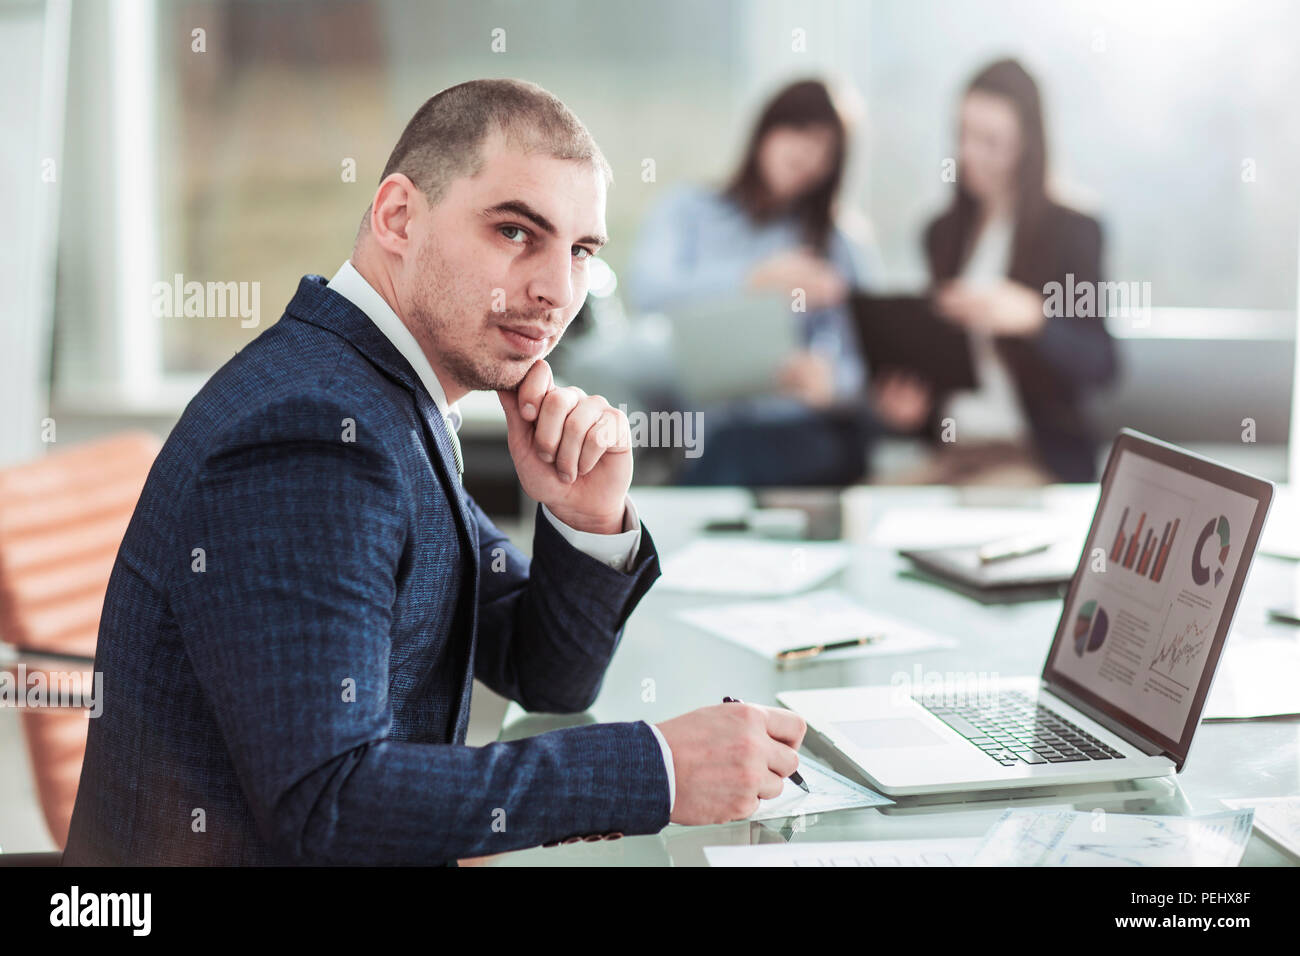 senior Manager at the workplace on the background of business team - Stock Image